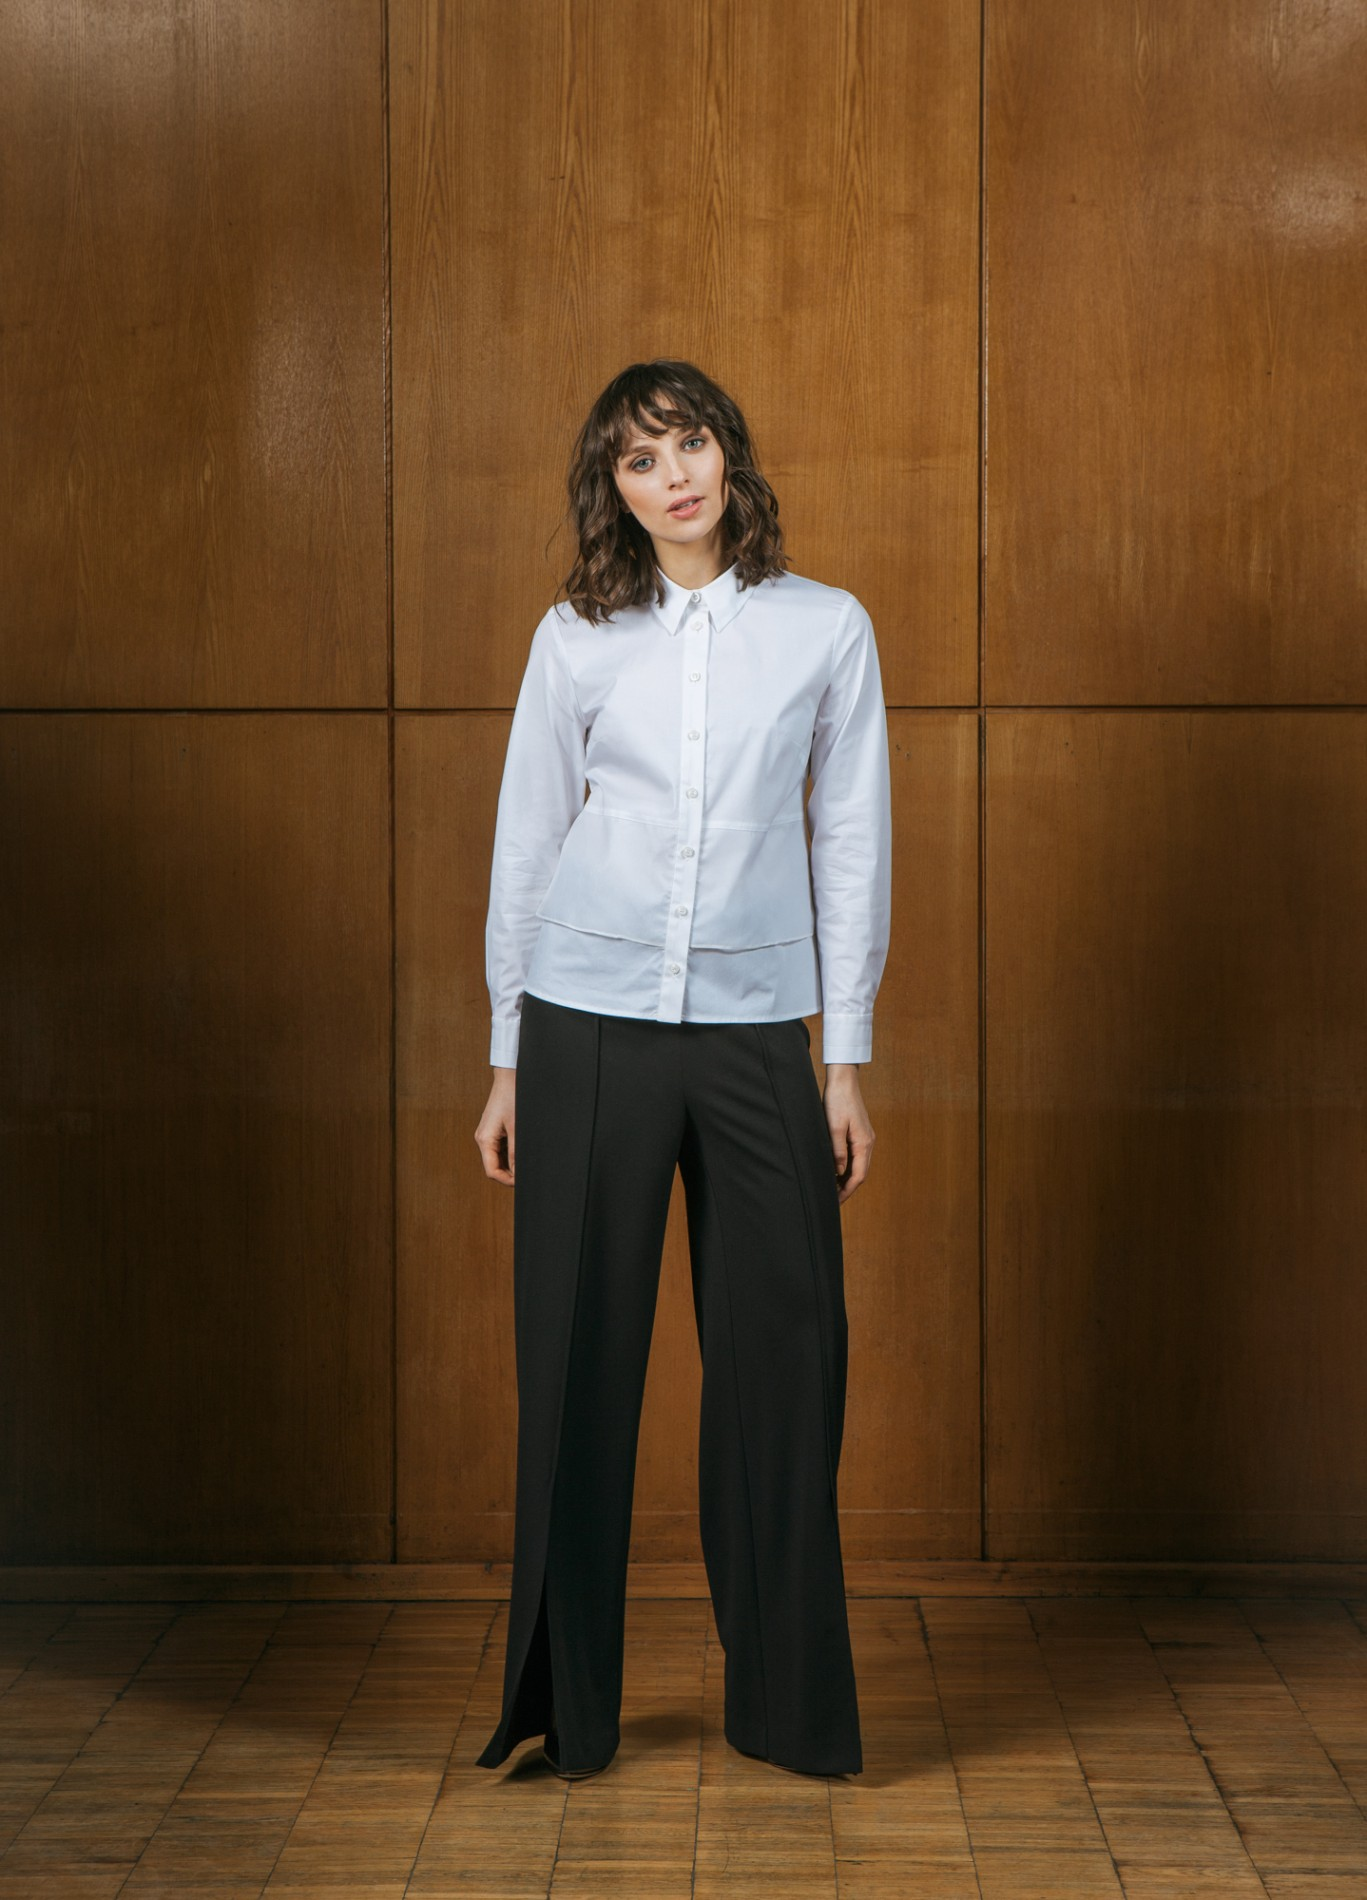 PEARL Elegant Shirt and ONYX Wide Trousers